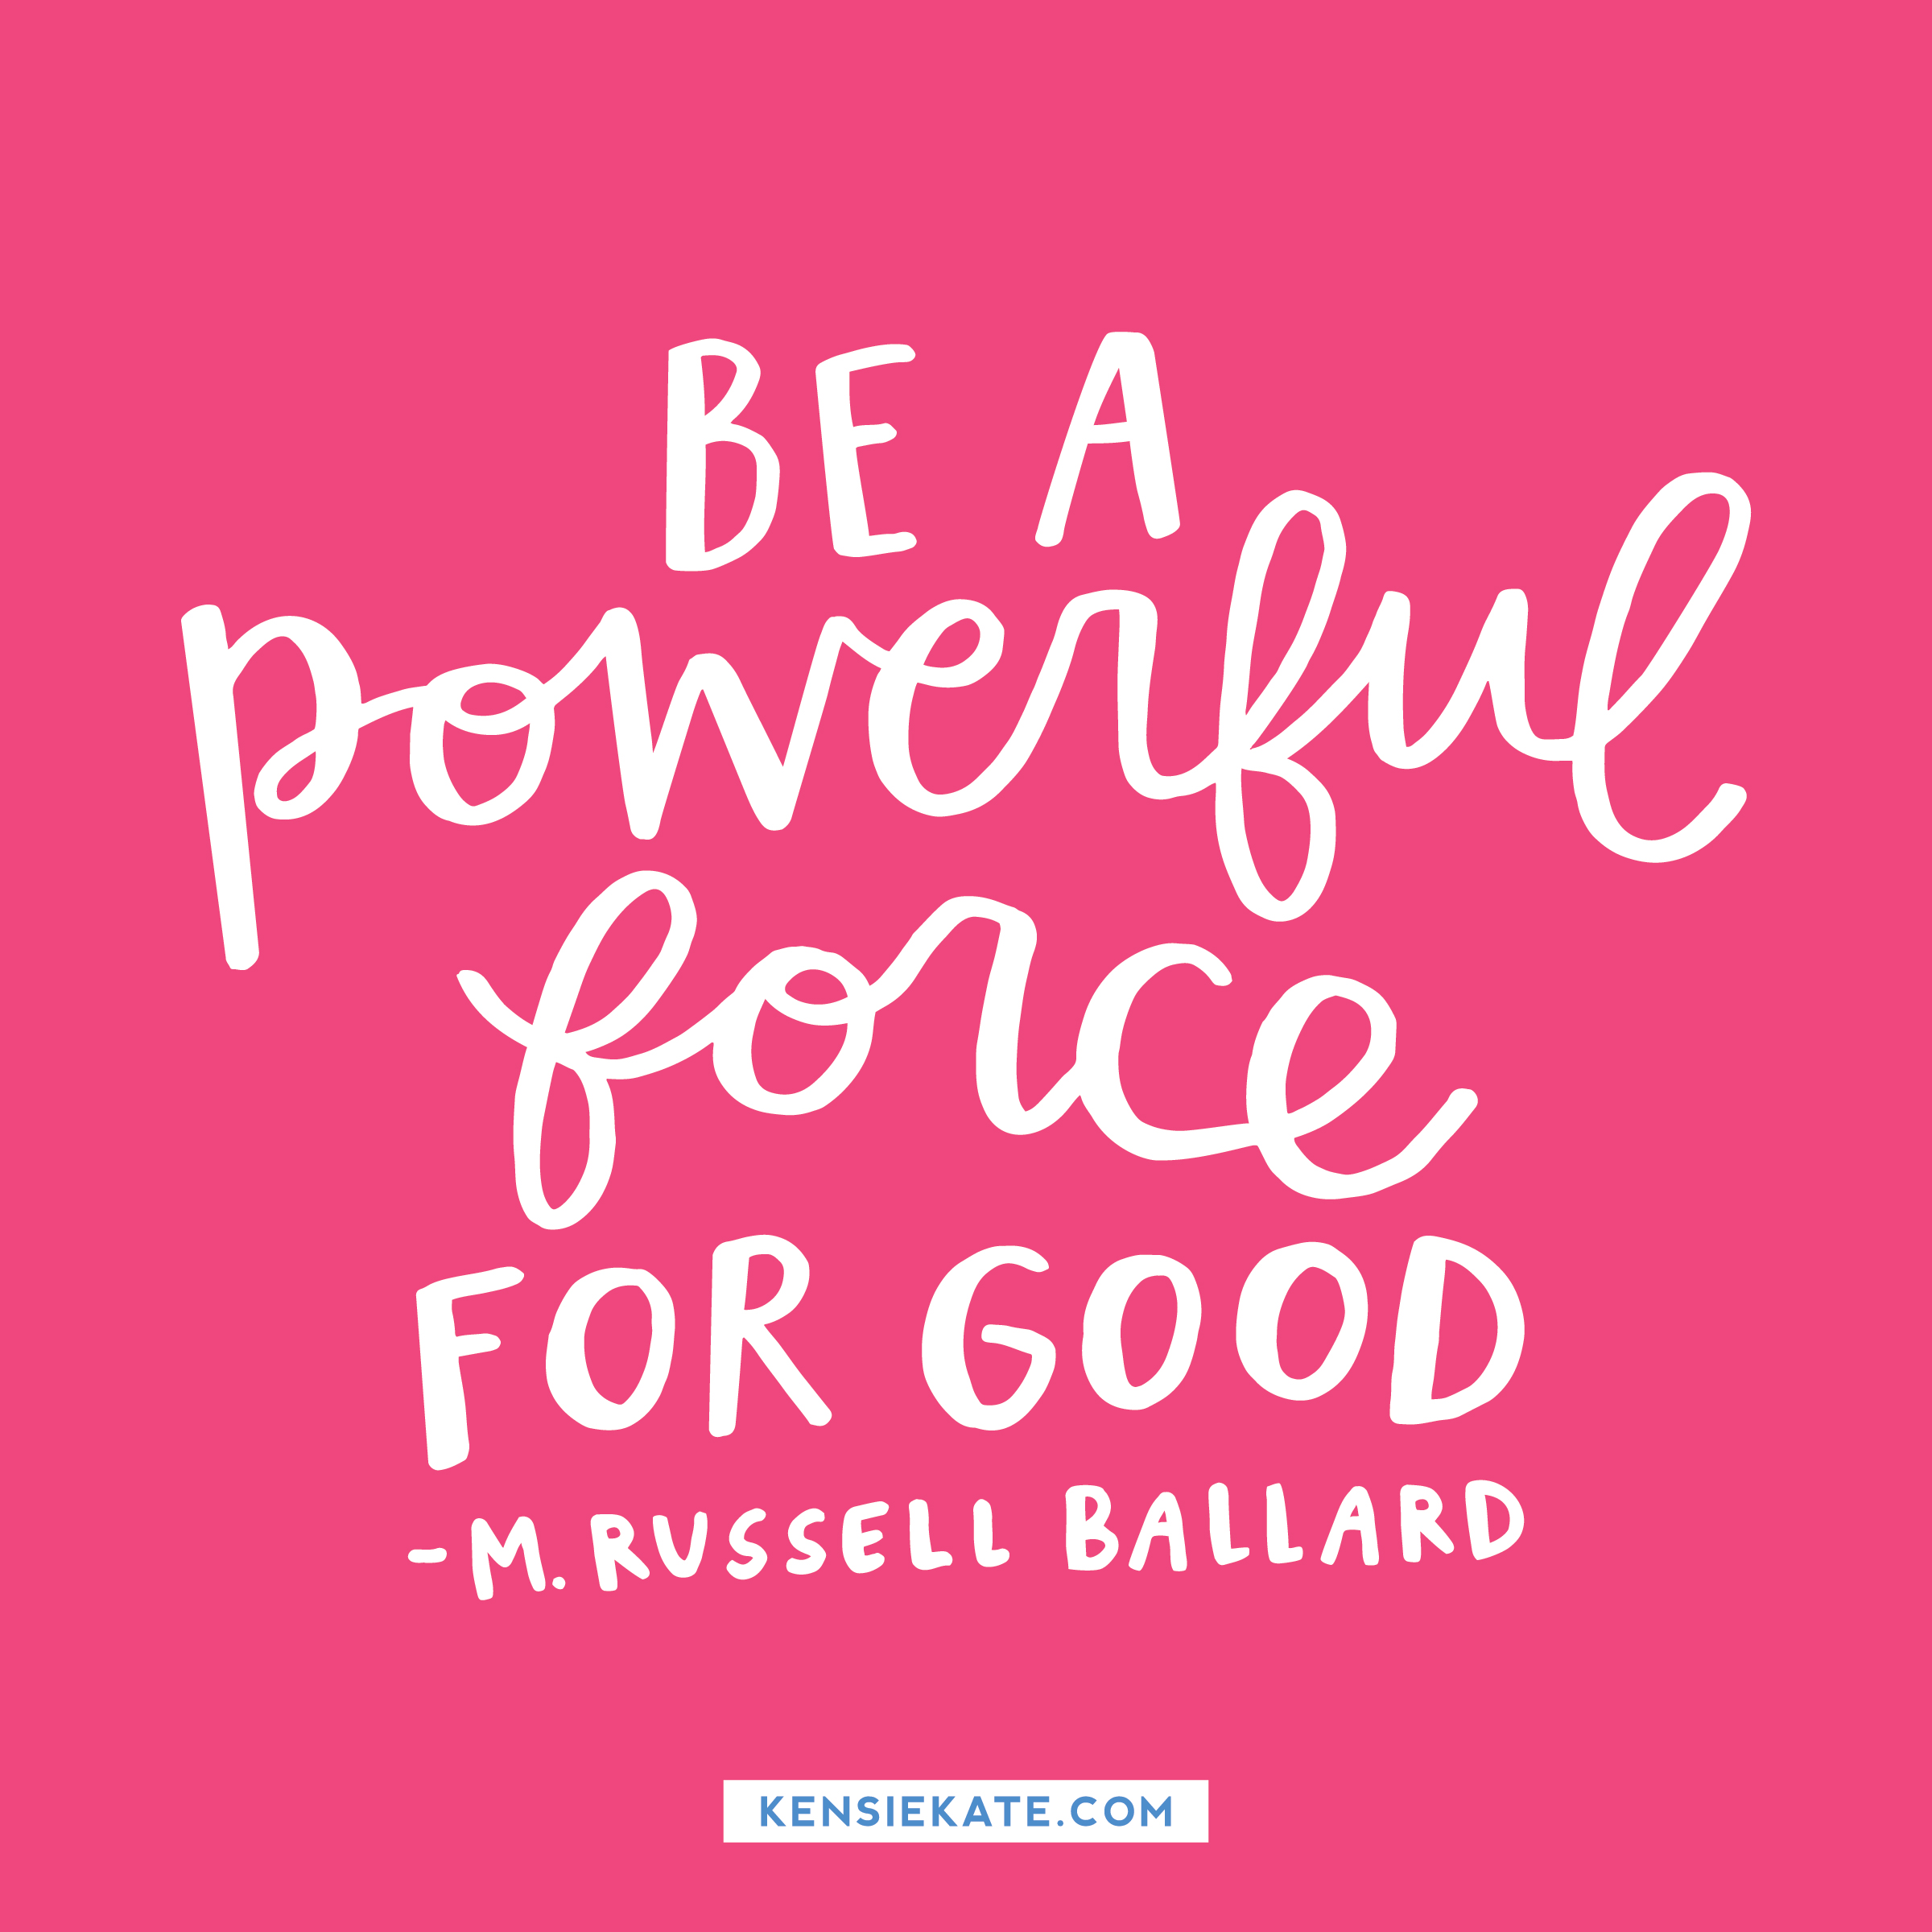 Be a powerful force for good